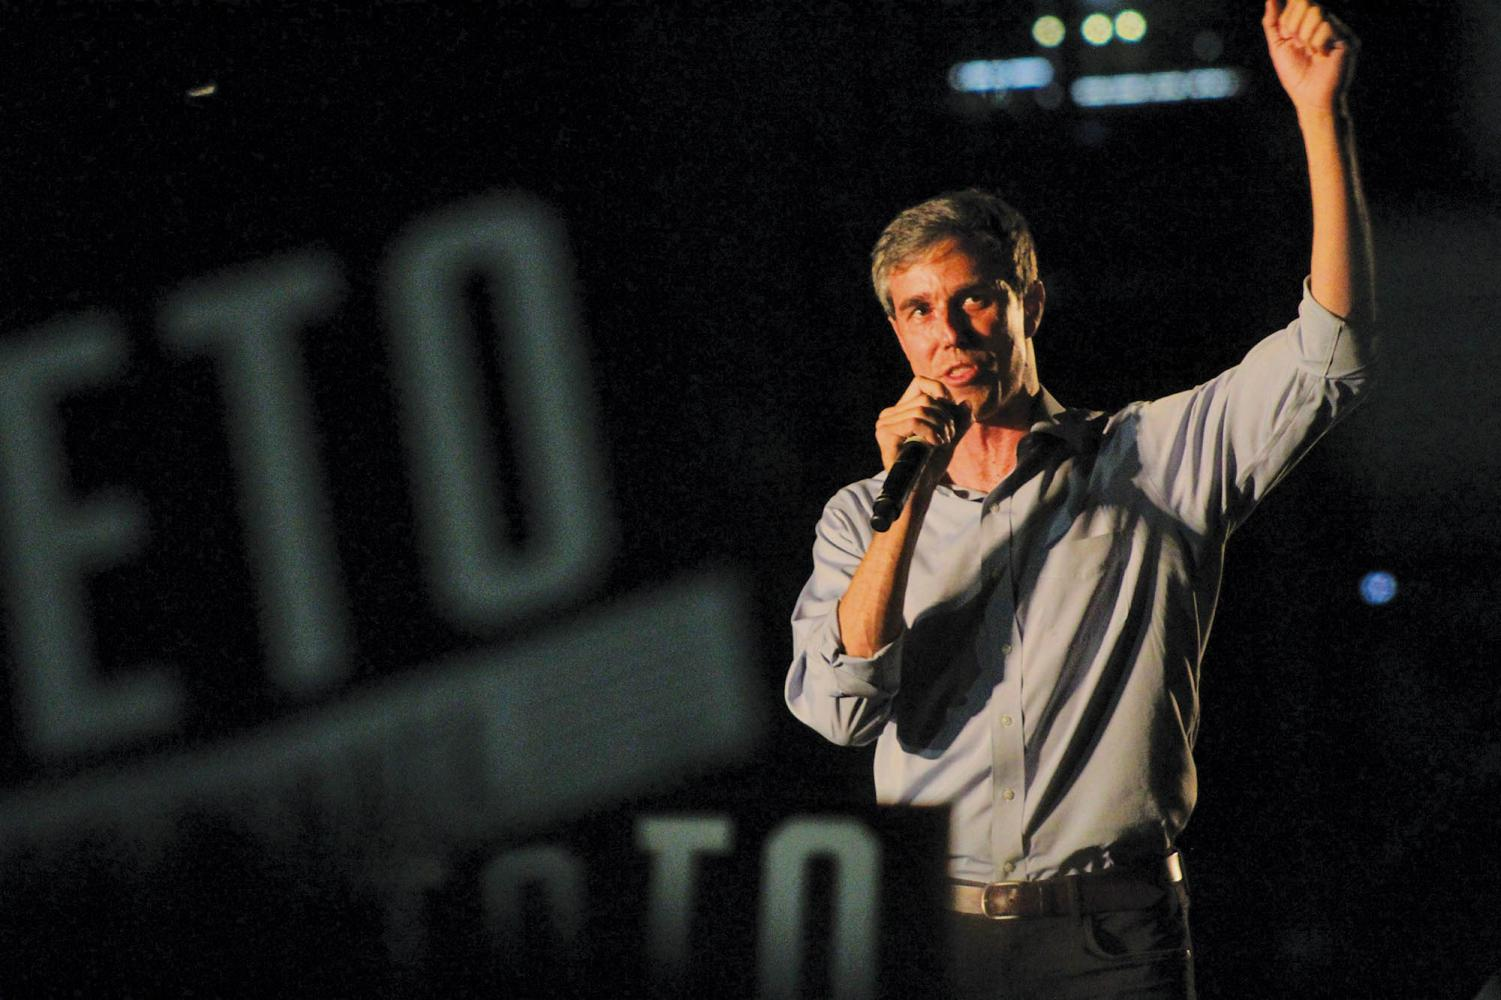 Beto O'Rourke campaigned several times during his 2018 senate run, including speaking at a free concert (pictured above). He returned to the capital city to kick of his 2020 president run.